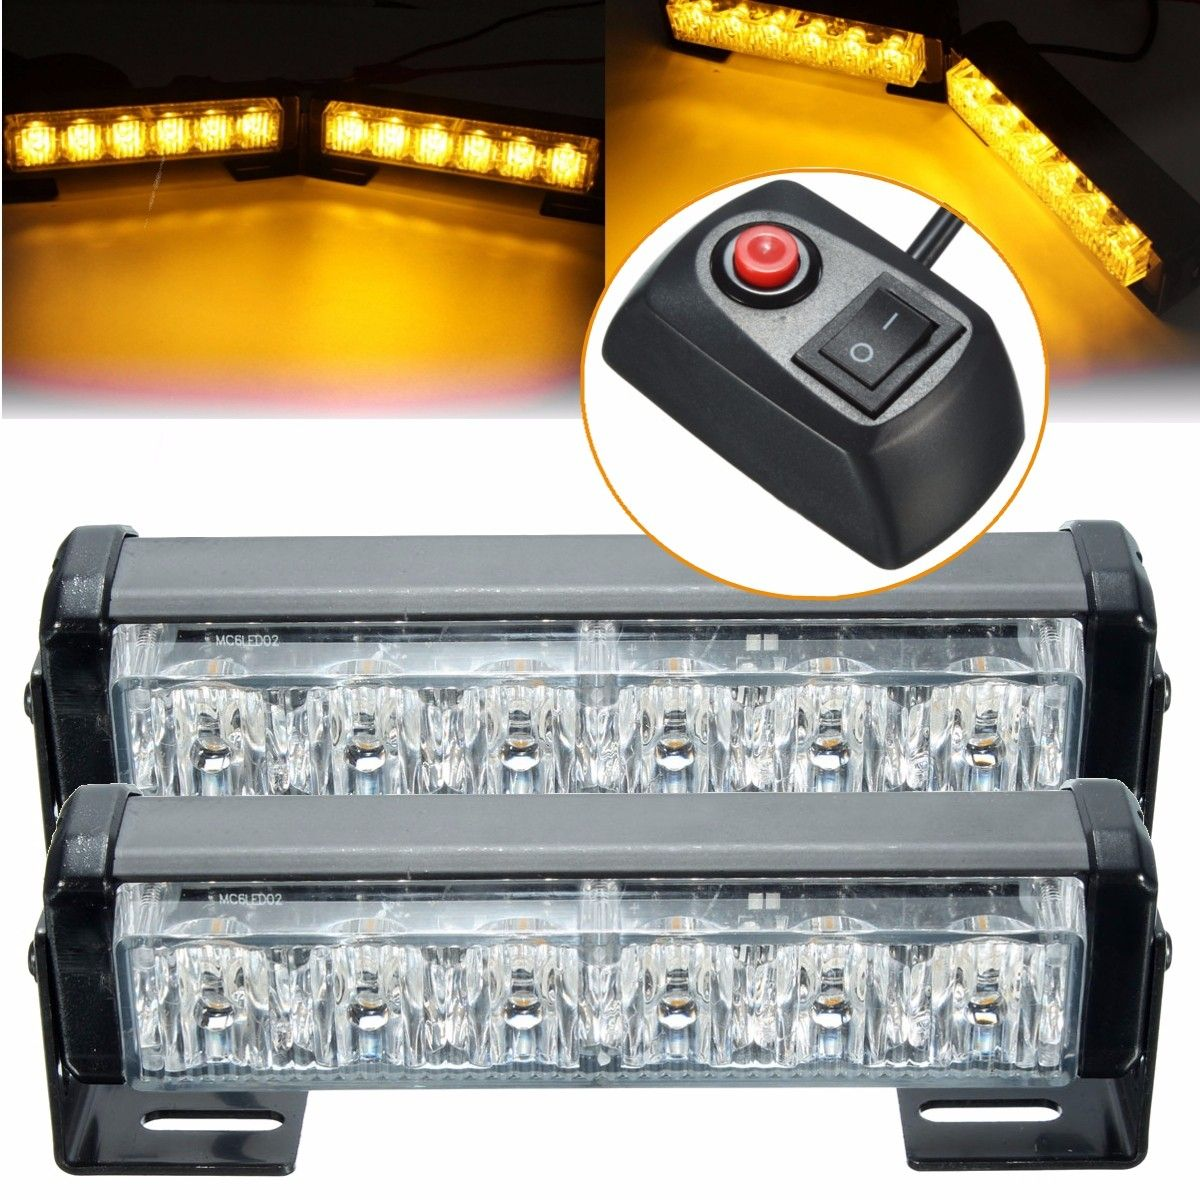 Luz Led Intermitente 6 Pares De Led Coche ámbar Intermitente De Advertencia Luz